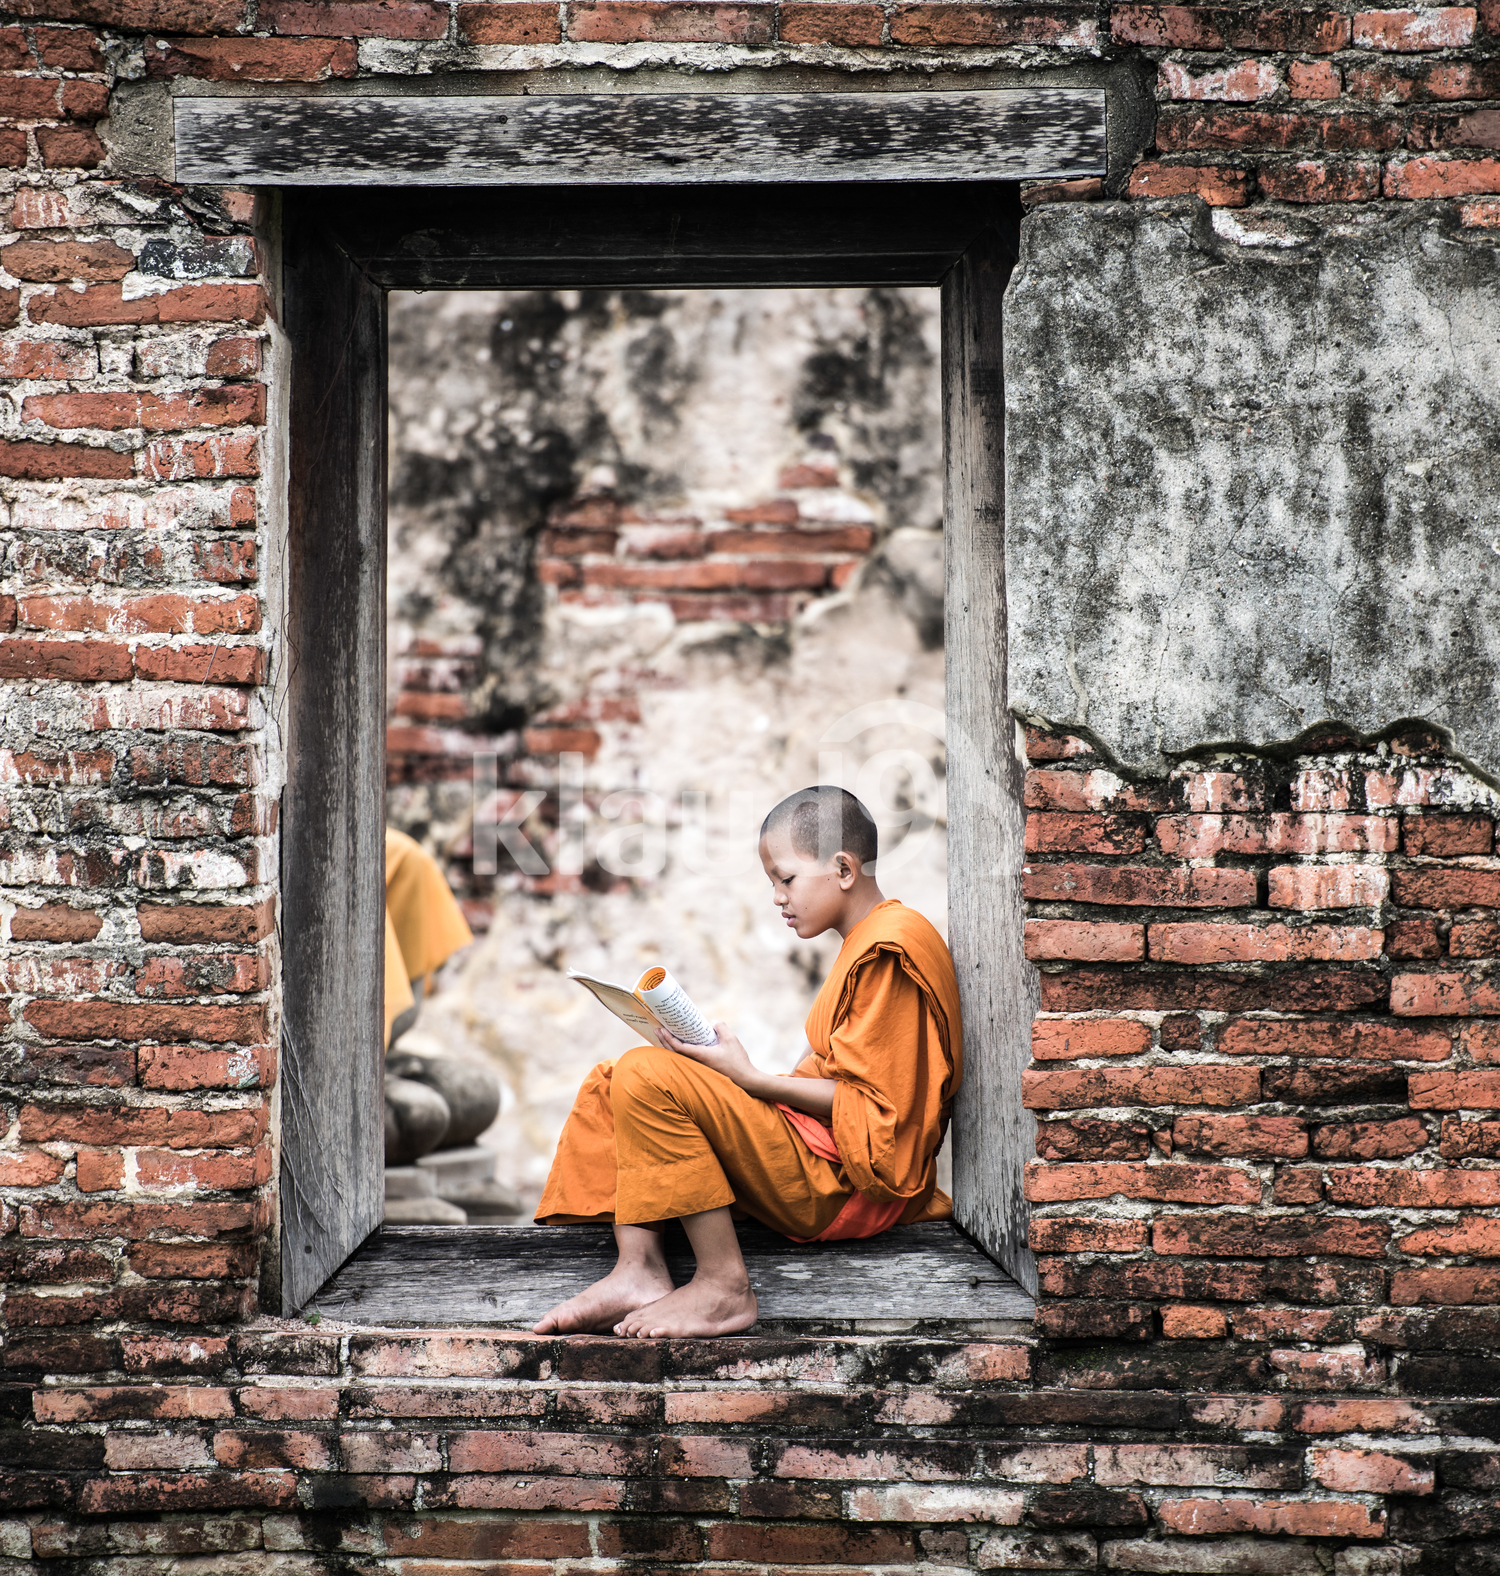 Southeast Asian Novice monk reading book